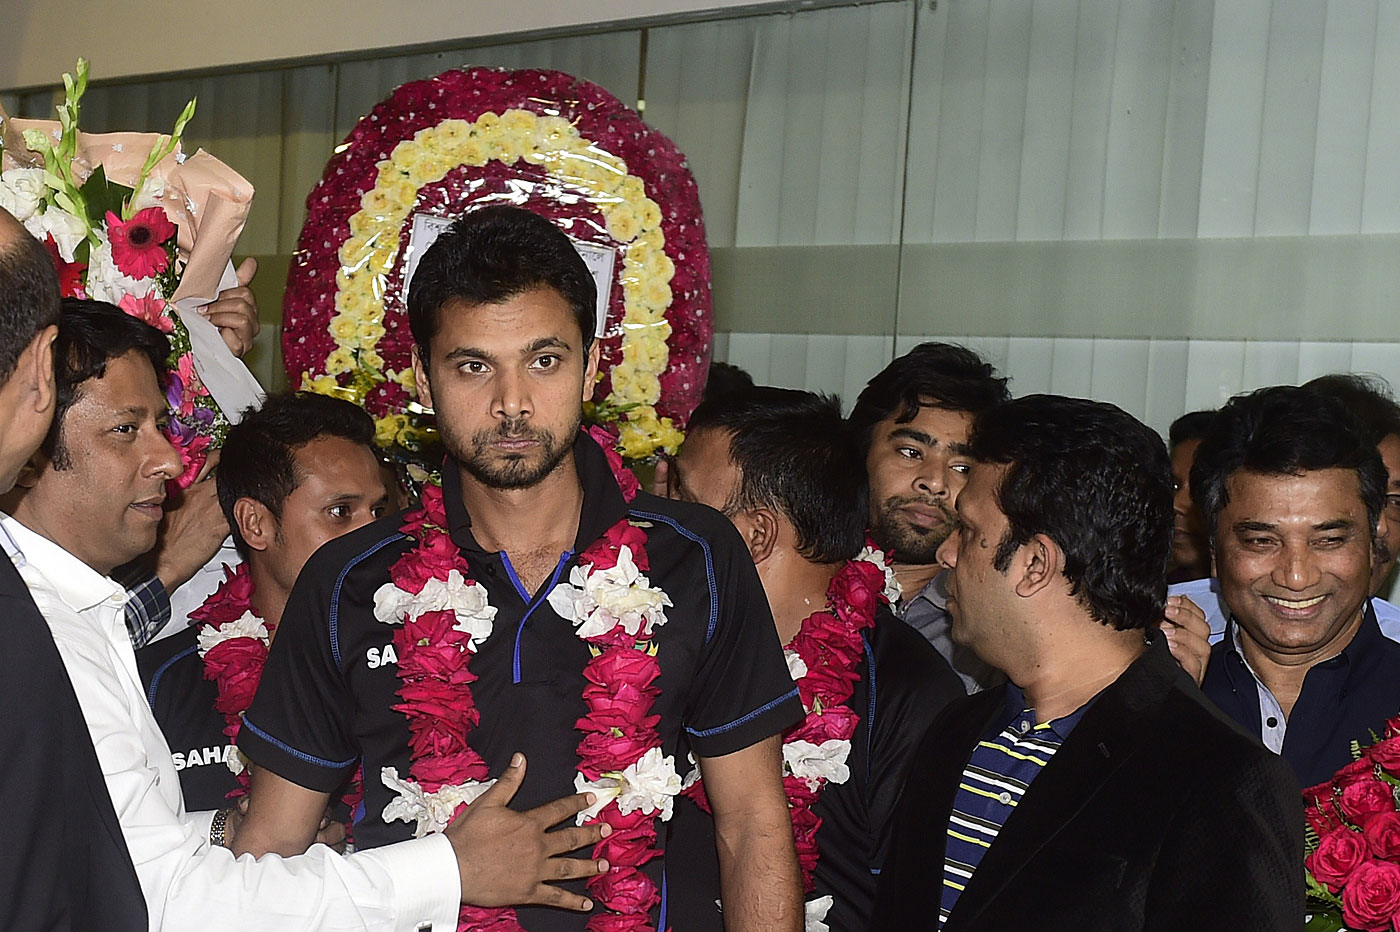 Thanks, but: Mashrafe thought the team's reception at home after the 2015 World Cup was a little over the top